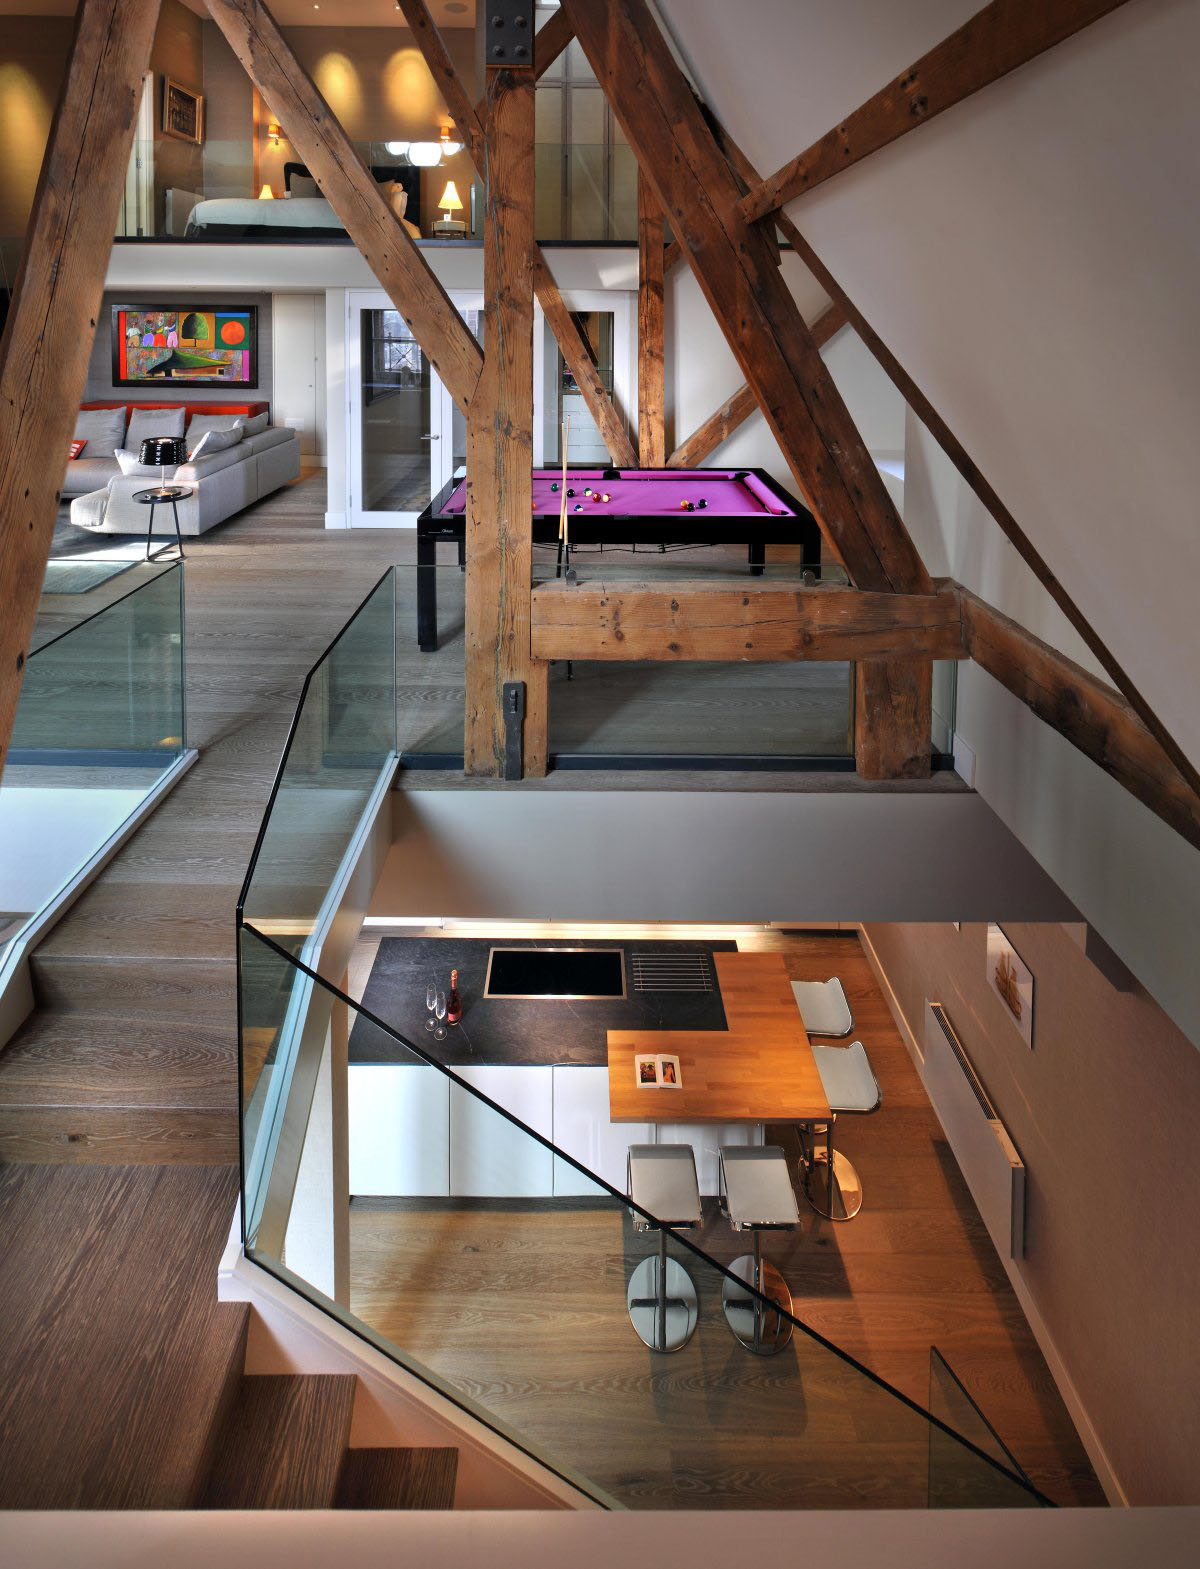 Penthouse with Wood Beams